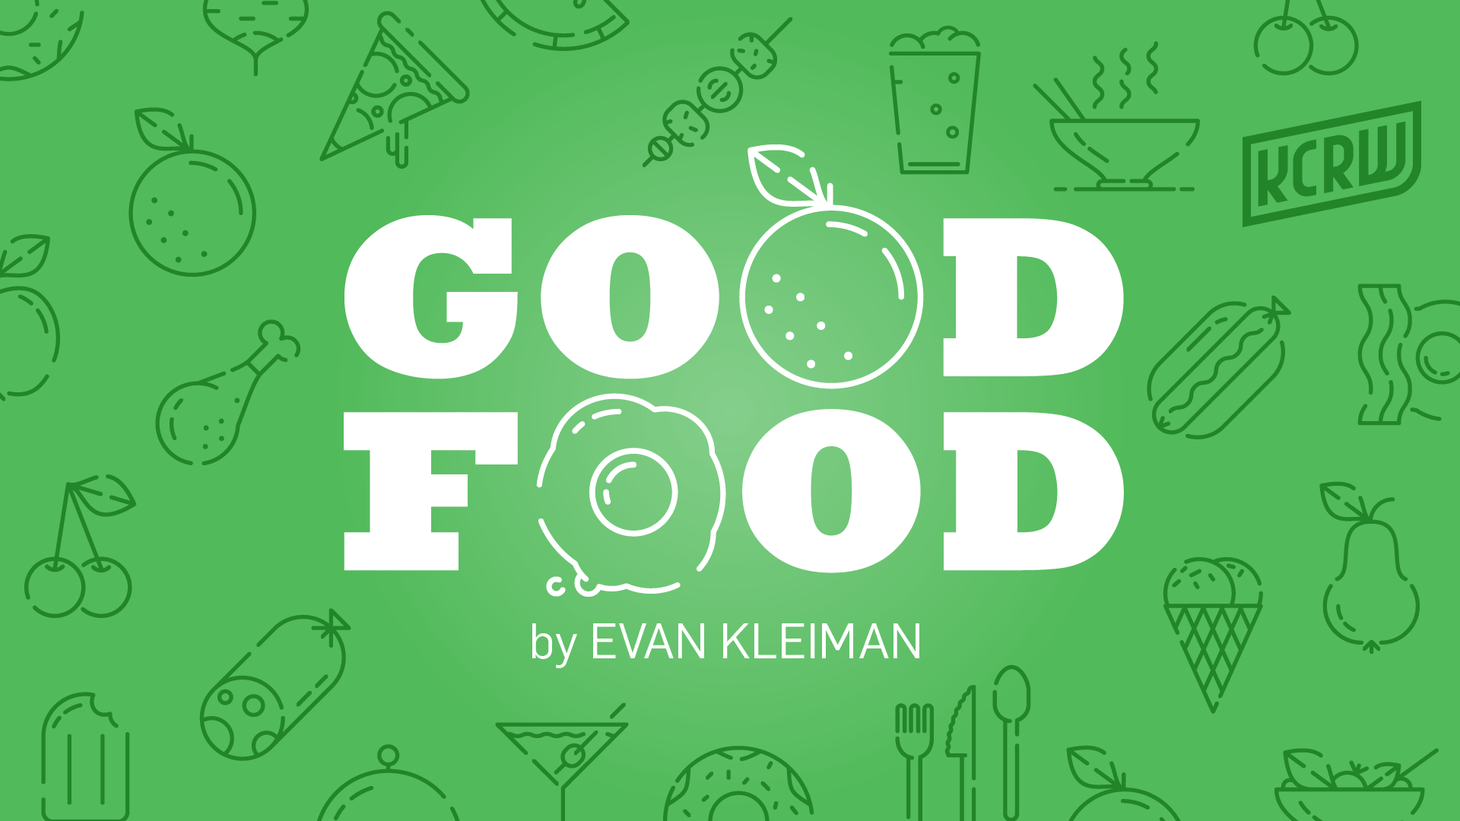 Good Food welcomes Chris Schlessinger, co-author of License to Grill: he'll get us out of the kitchen and into the backyard. Also, beverage expert Larry Stone talks about the best in beer brewing; and food scientist Harold McGee talks about watercress -- can it really counteract the effects of smoking? Also, our hosts will take a look at some of the best mail-order catalogs.